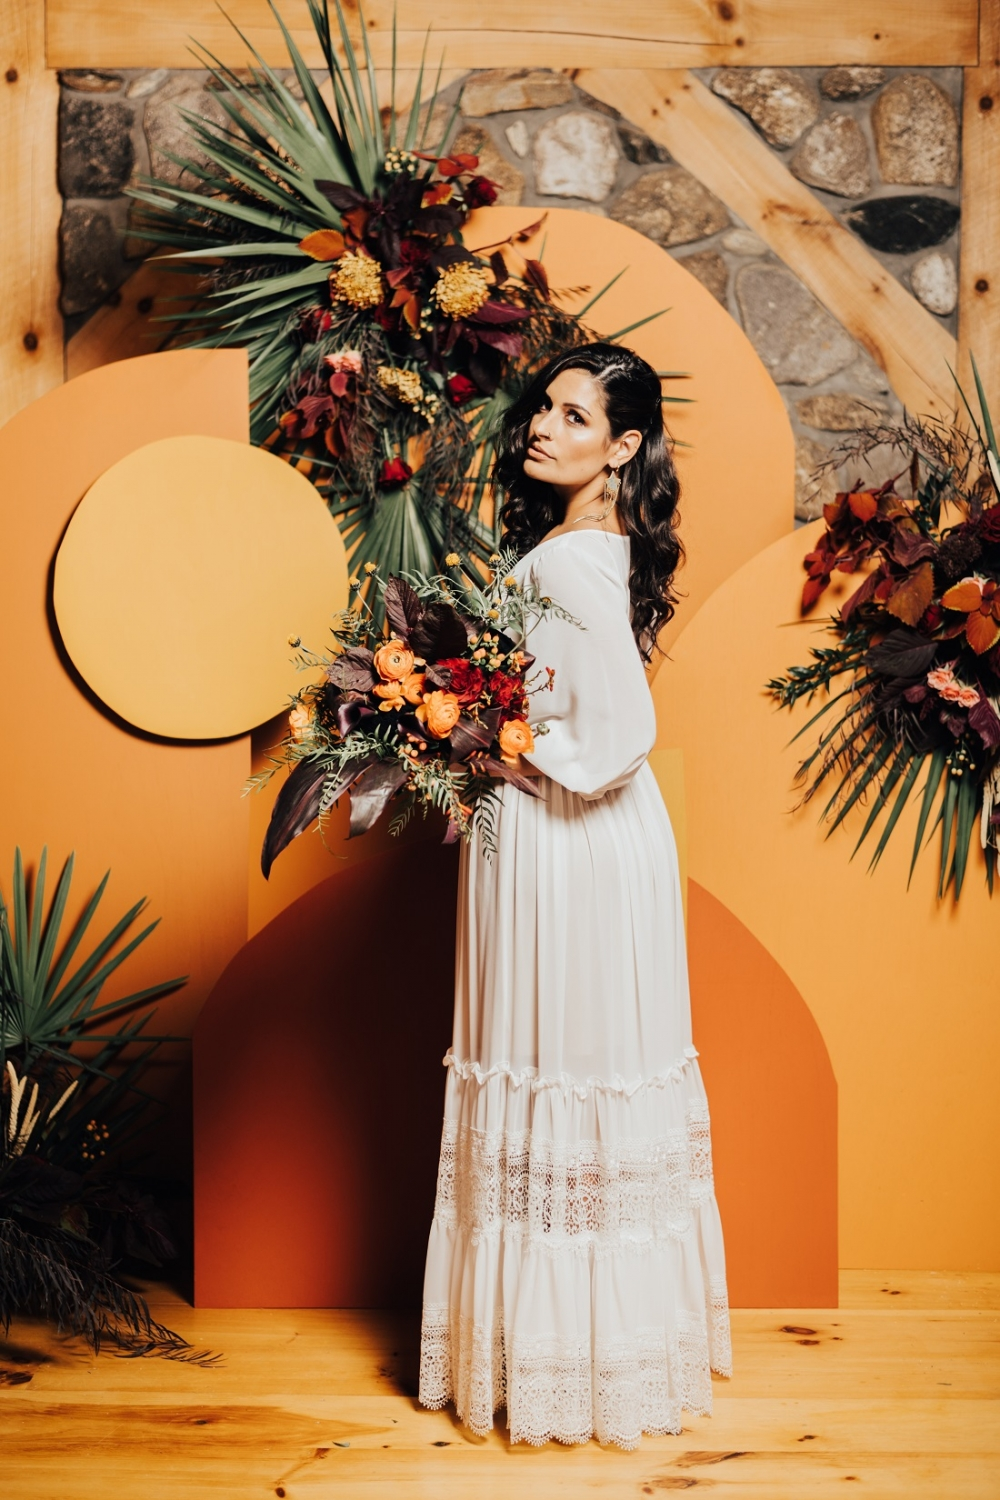 Bride in front of orange and yellow backdrop